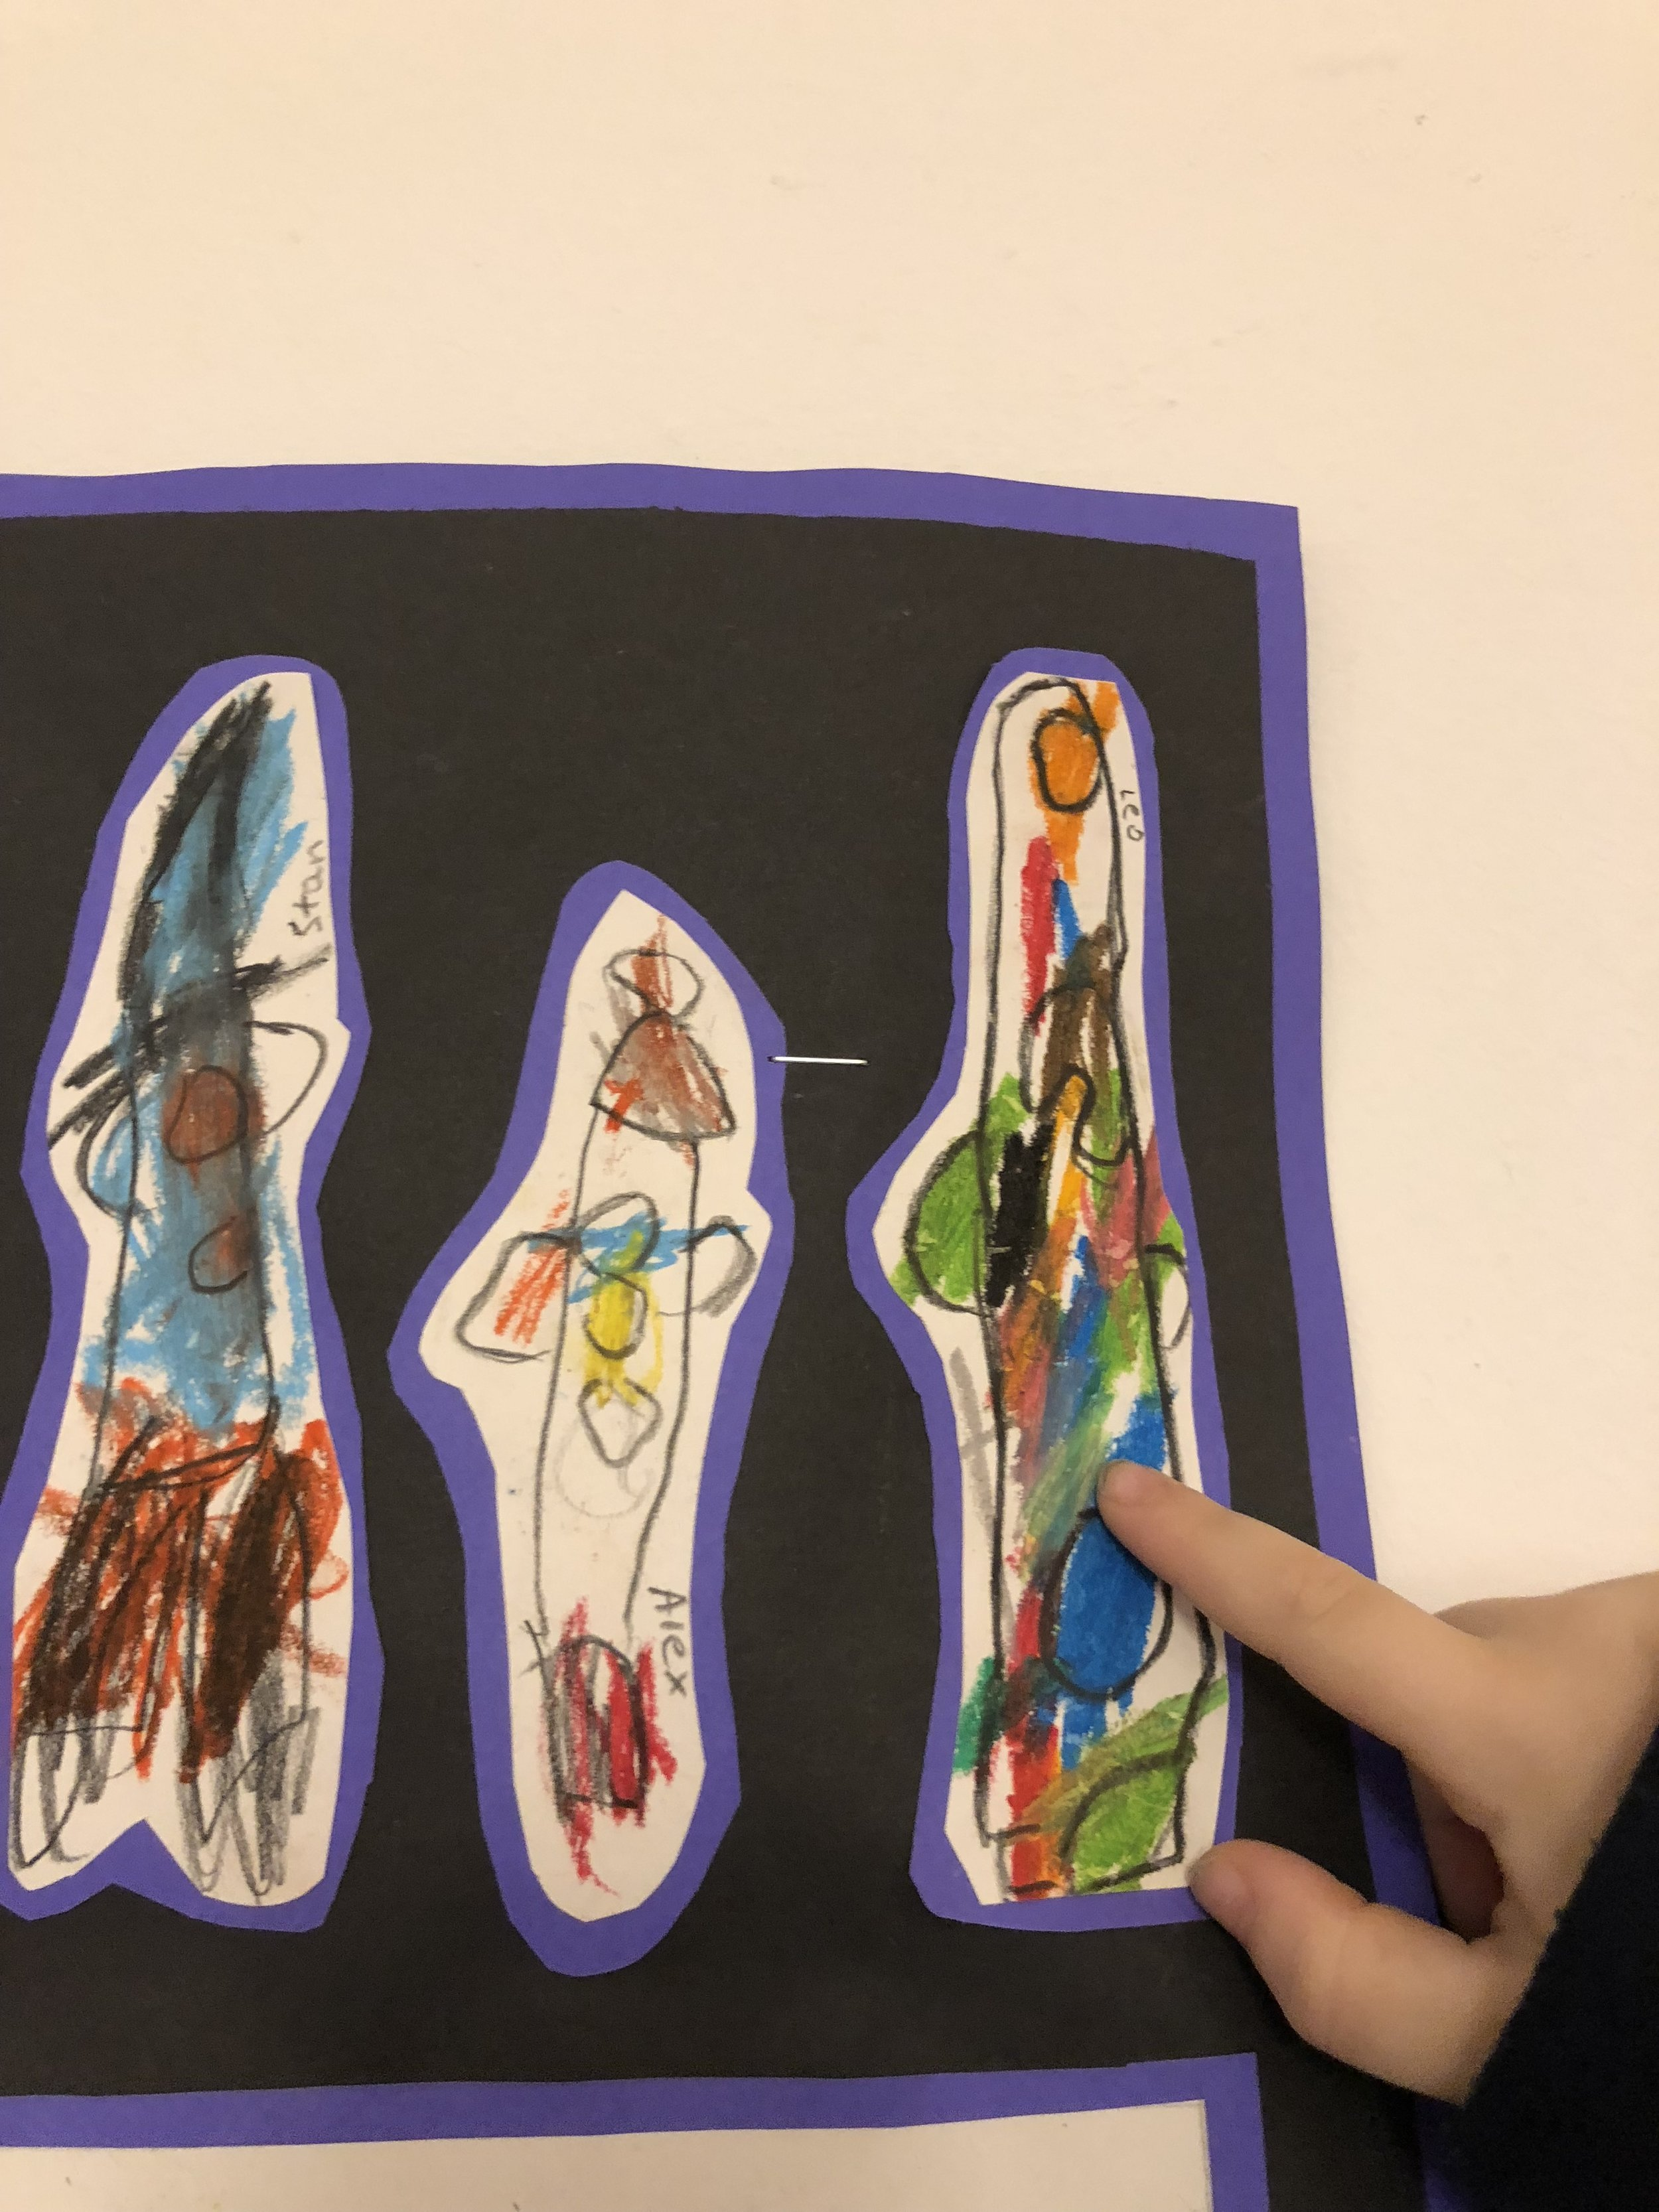 The children then gave Robi a tour of there own art work and there own self portraits inspired by I projected you.